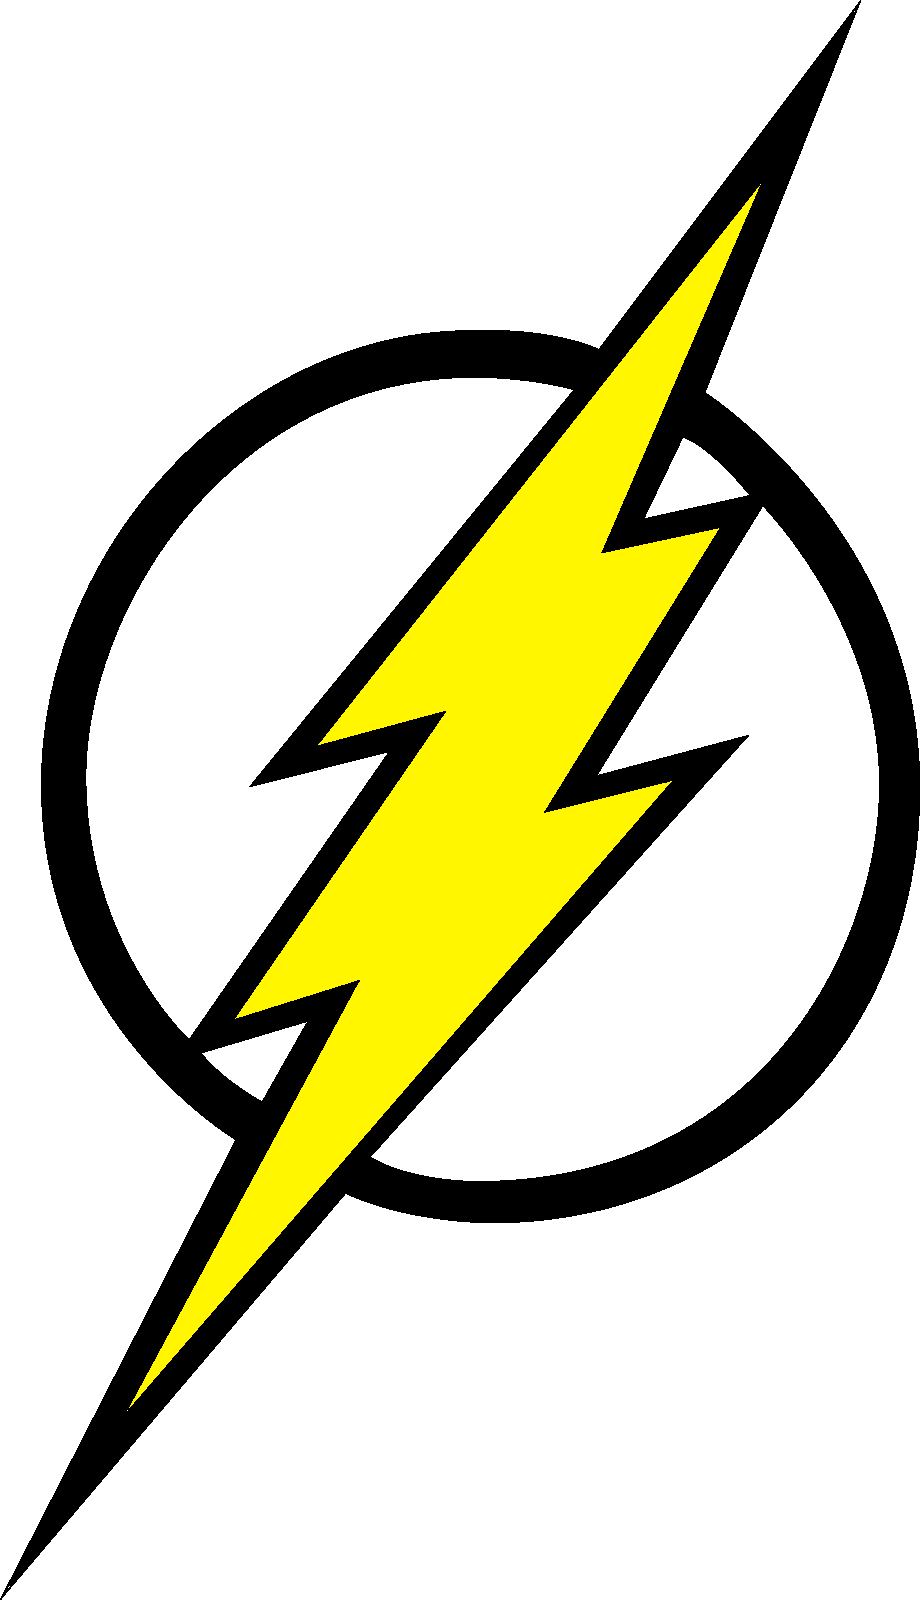 Lightning bolt clipart the flash. Logo fill by mr